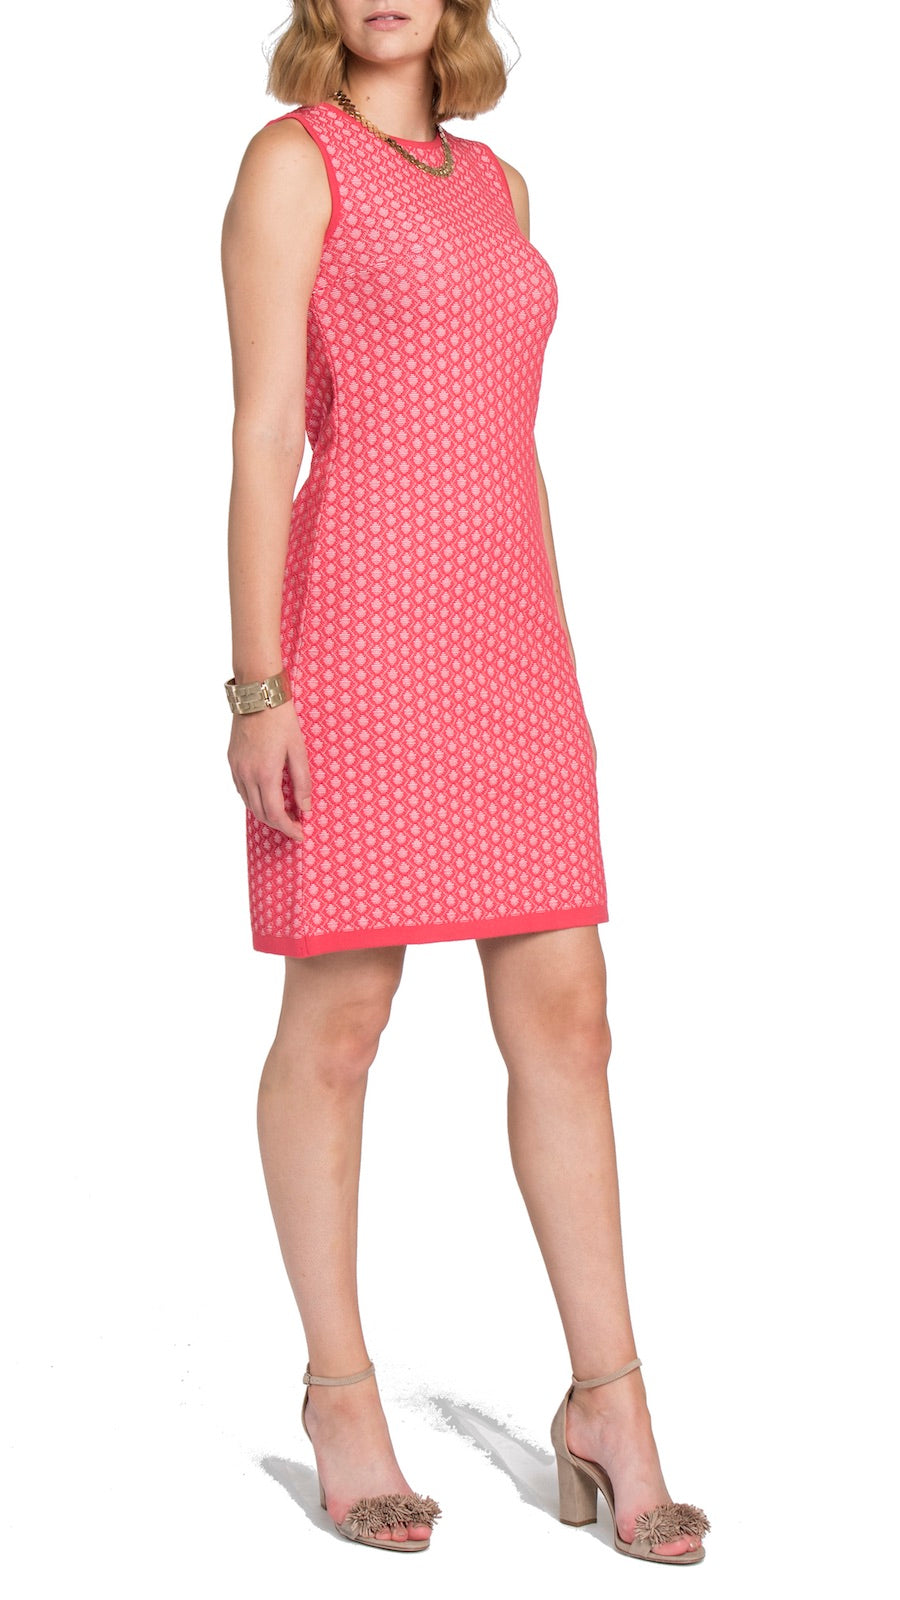 CONTEMPO Gianna Jacquard-Knit Dress, Coral Pink/White